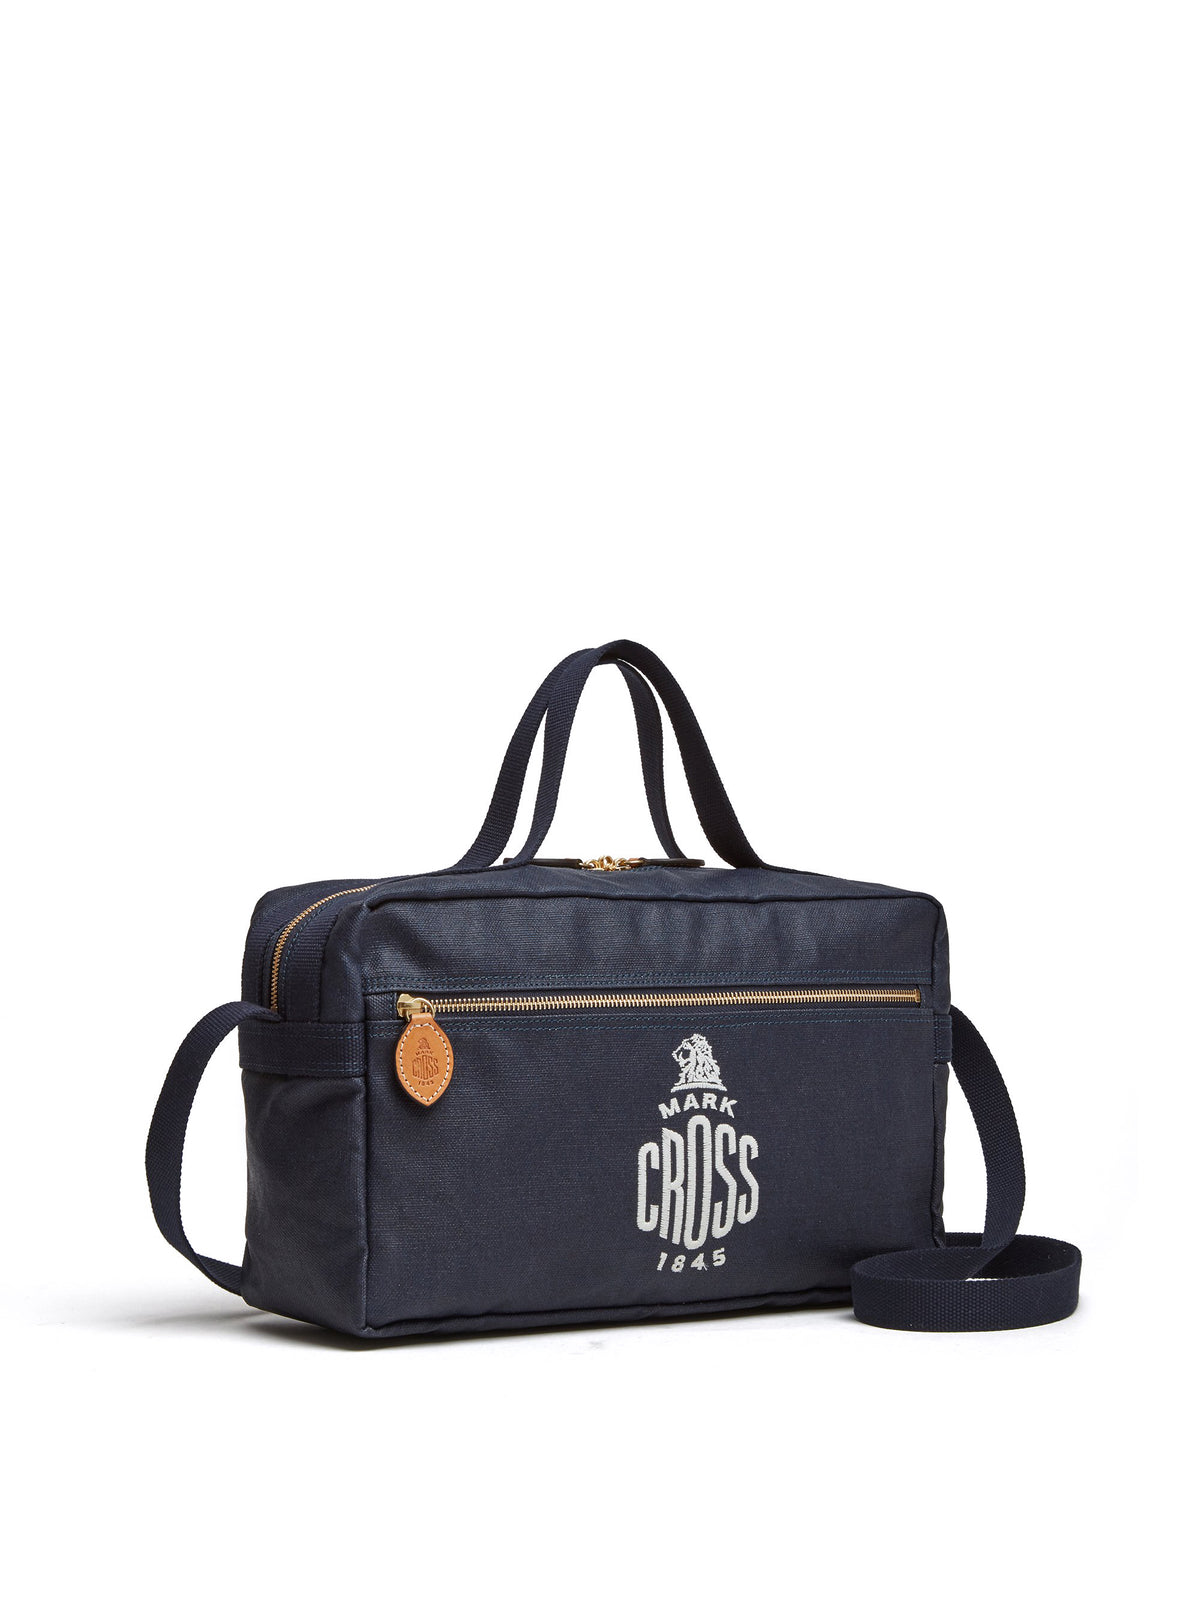 Mark Cross Weatherbird Canvas Messenger Bag Canvas Navy Side